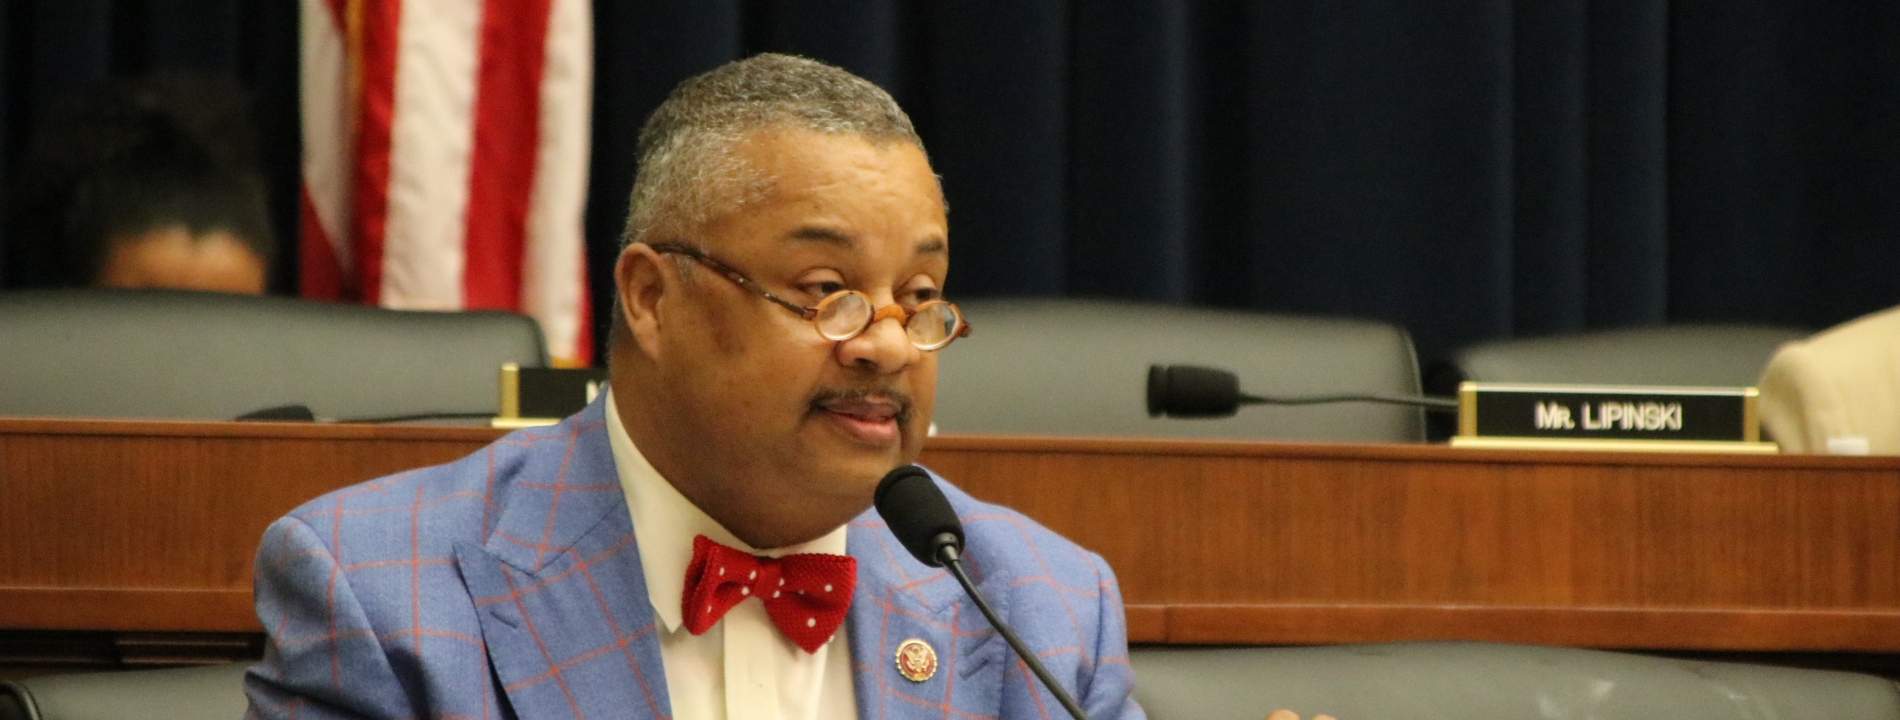 Rep. Payne speaking at a hearing